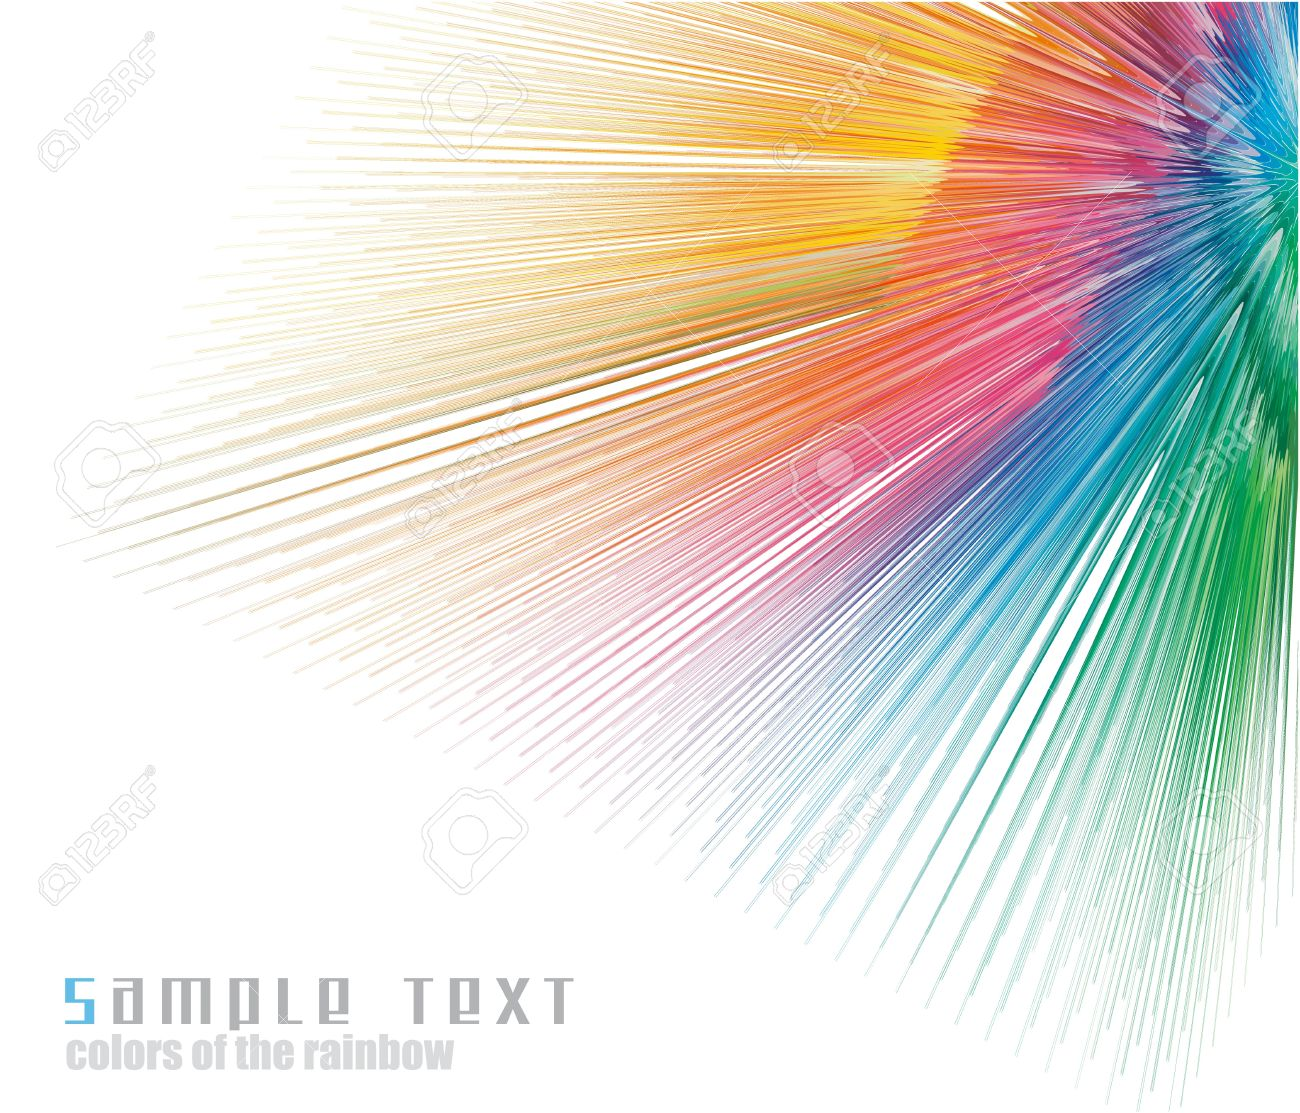 Abstract Rainbow Colours Spectrum Business Card Background Royalty ...